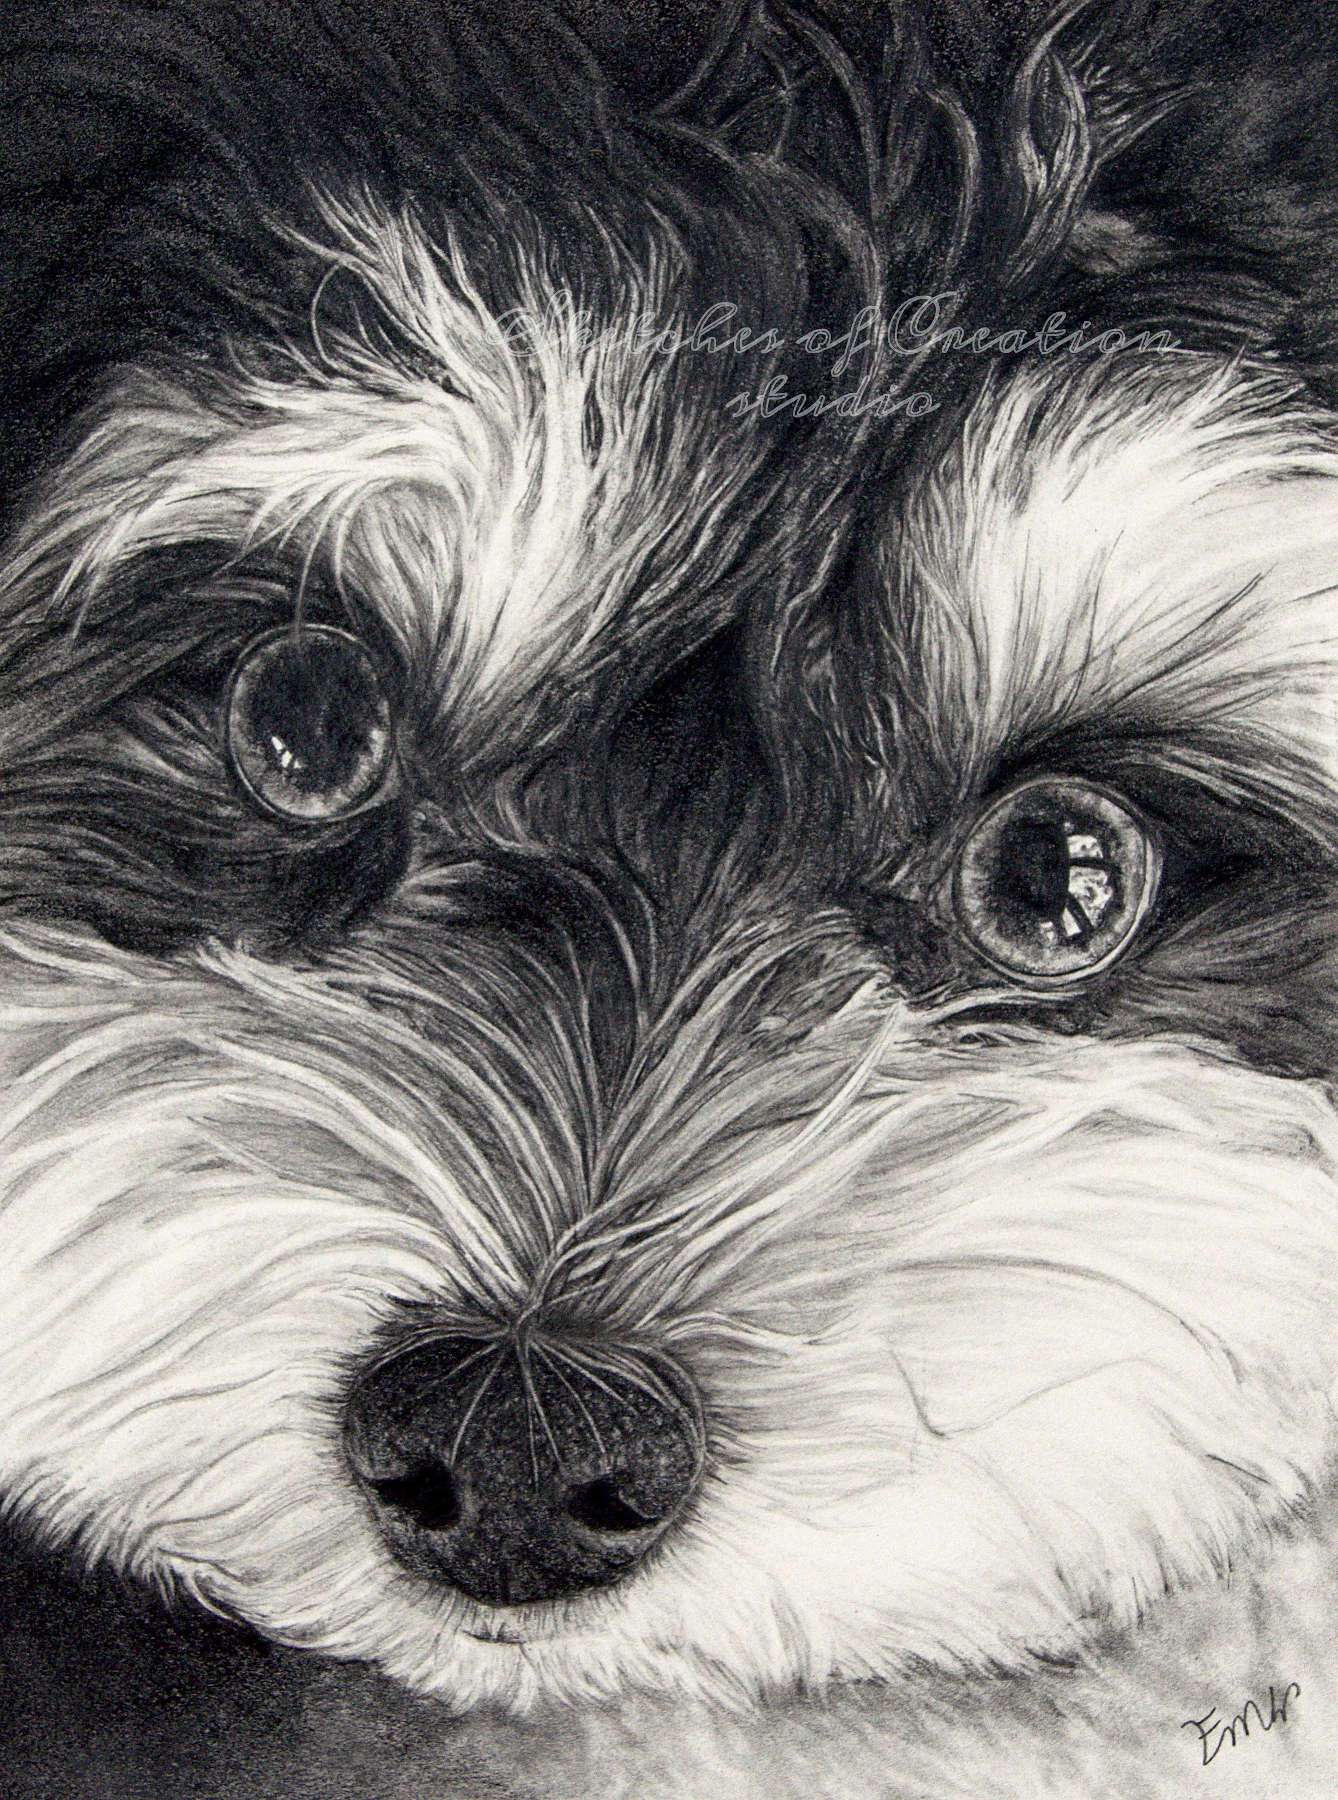 'Bella' a drawing of a havanese. 6x8 inches. Completed March 2020